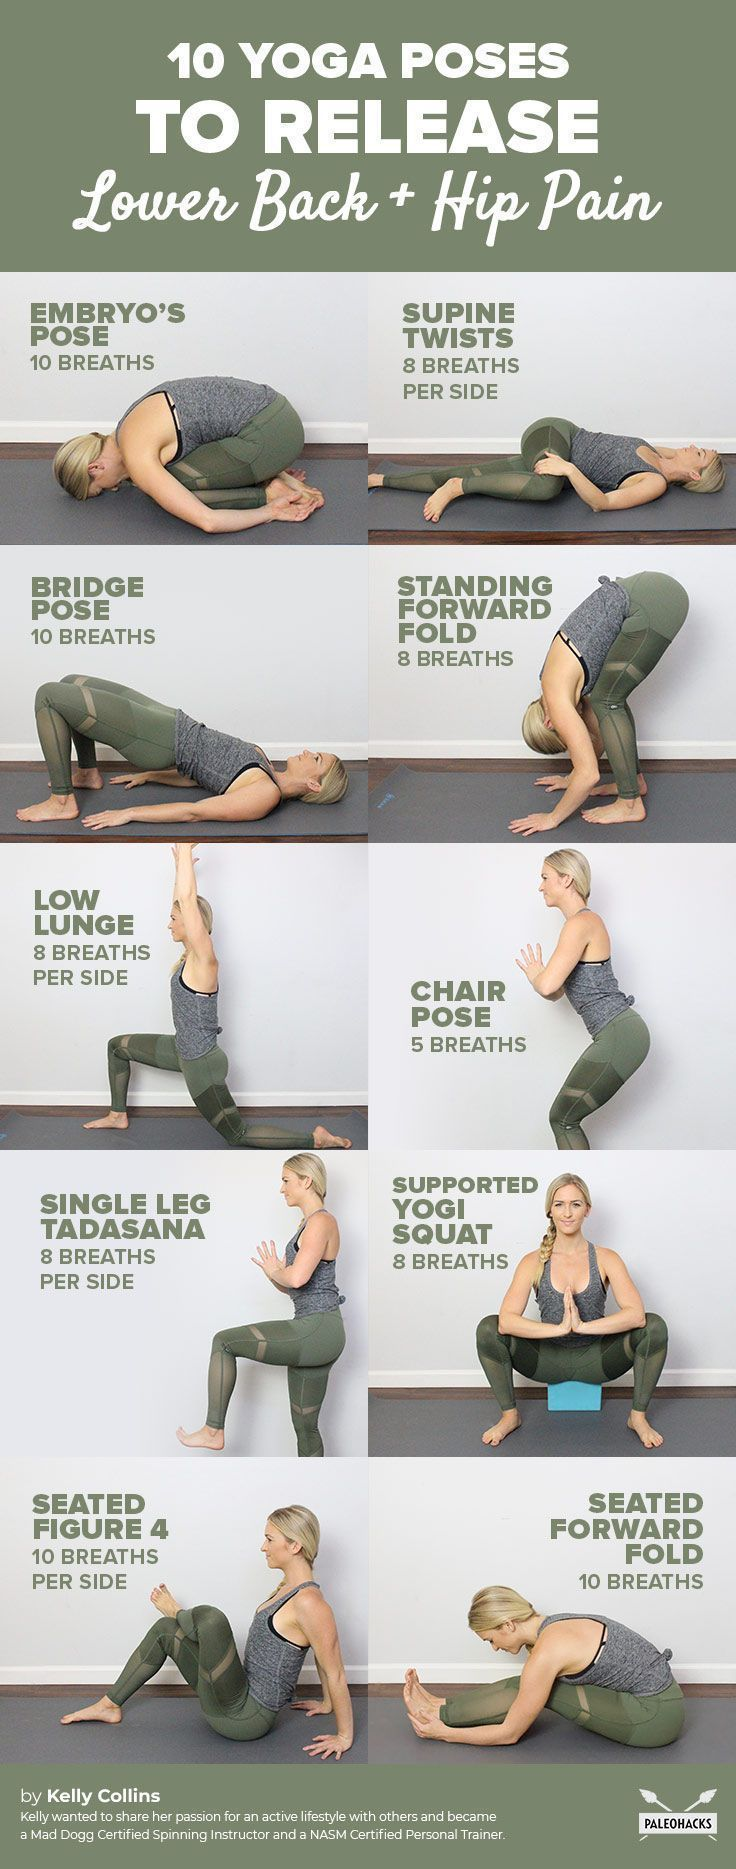 #yogatransformation #stretches #practice #relieve #fitness #stretch #reasons #should #lower #these #...